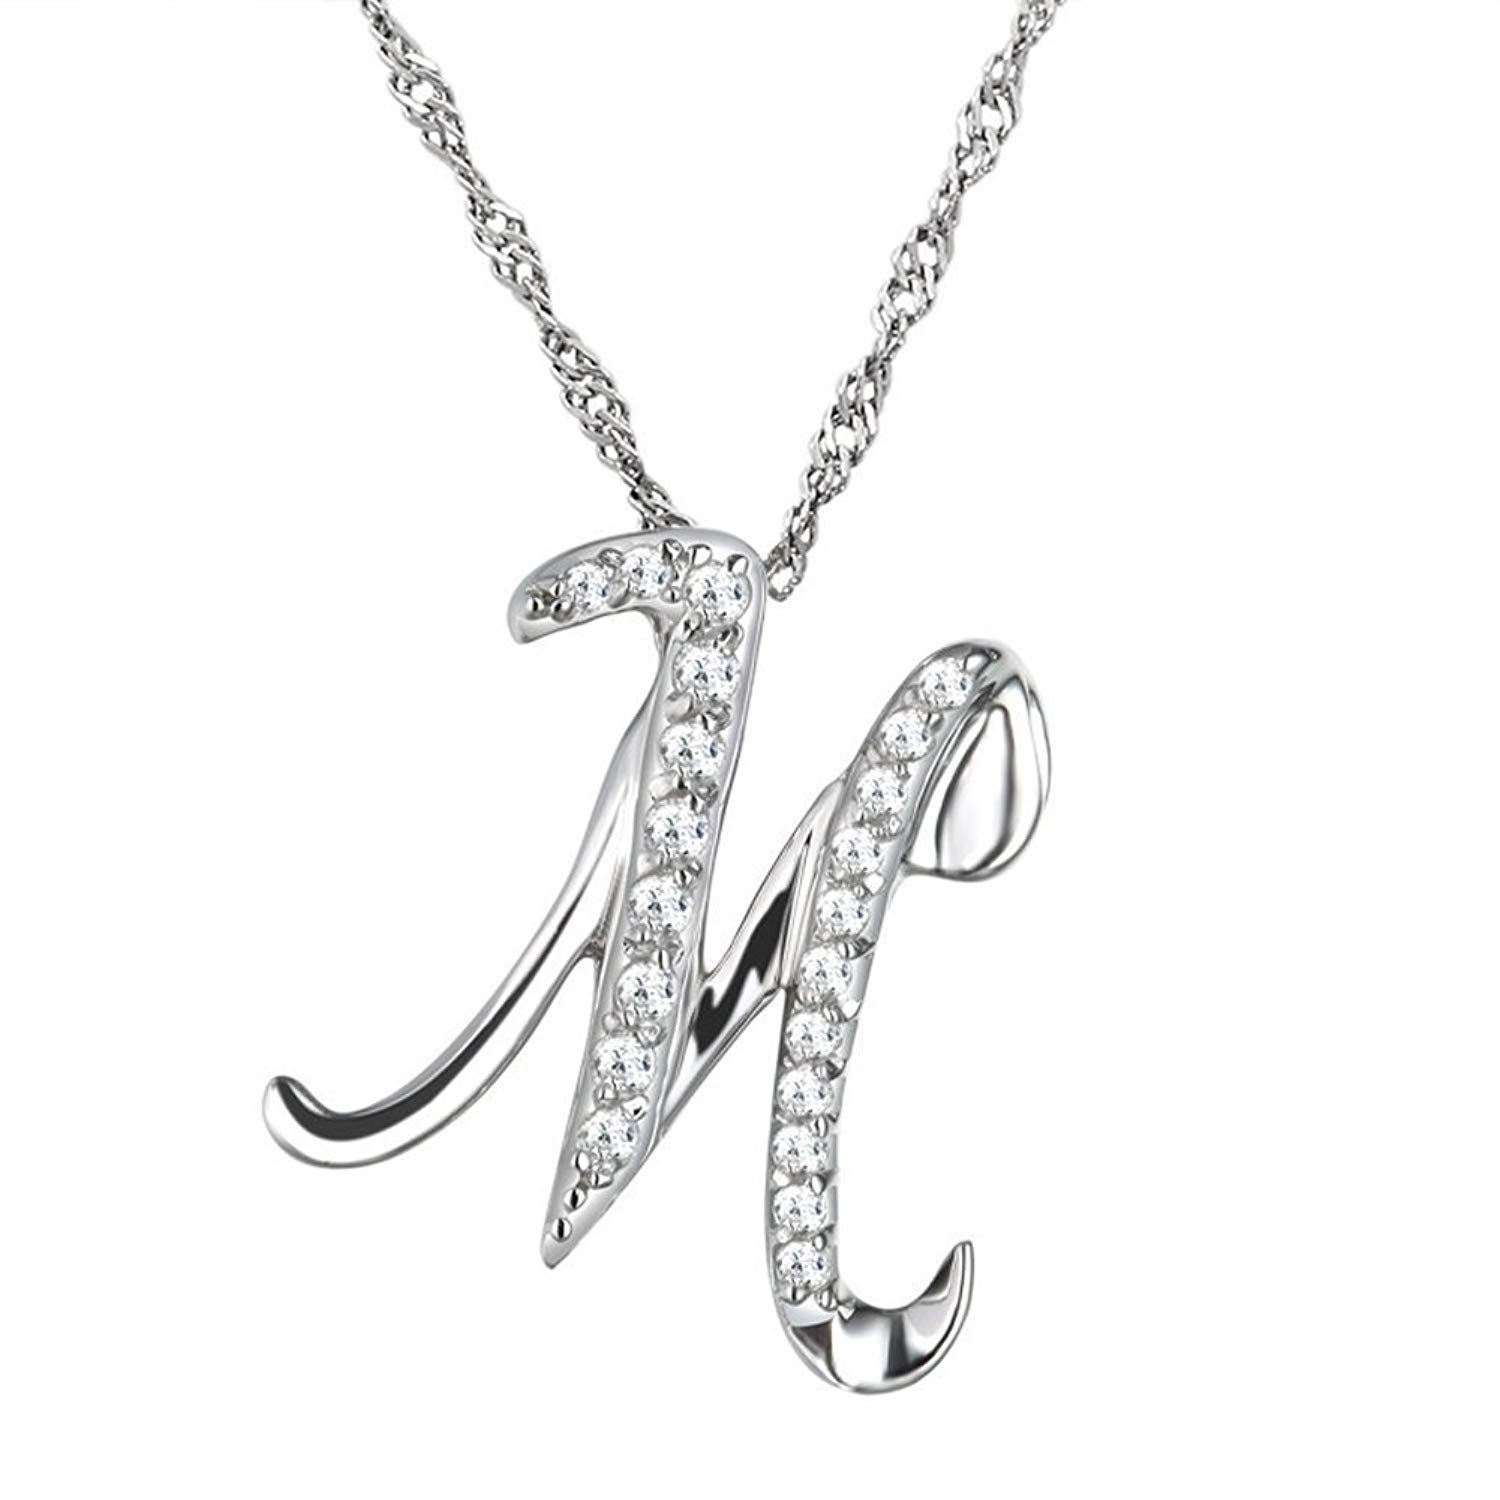 Sobly Jewelry Womens Fashion Name Initial Letter Cubic Zirconia Pendant Necklace 18 Inch Chai Black Beaded Jewelry Girly Jewelry Sterling Silver Cross Pendant